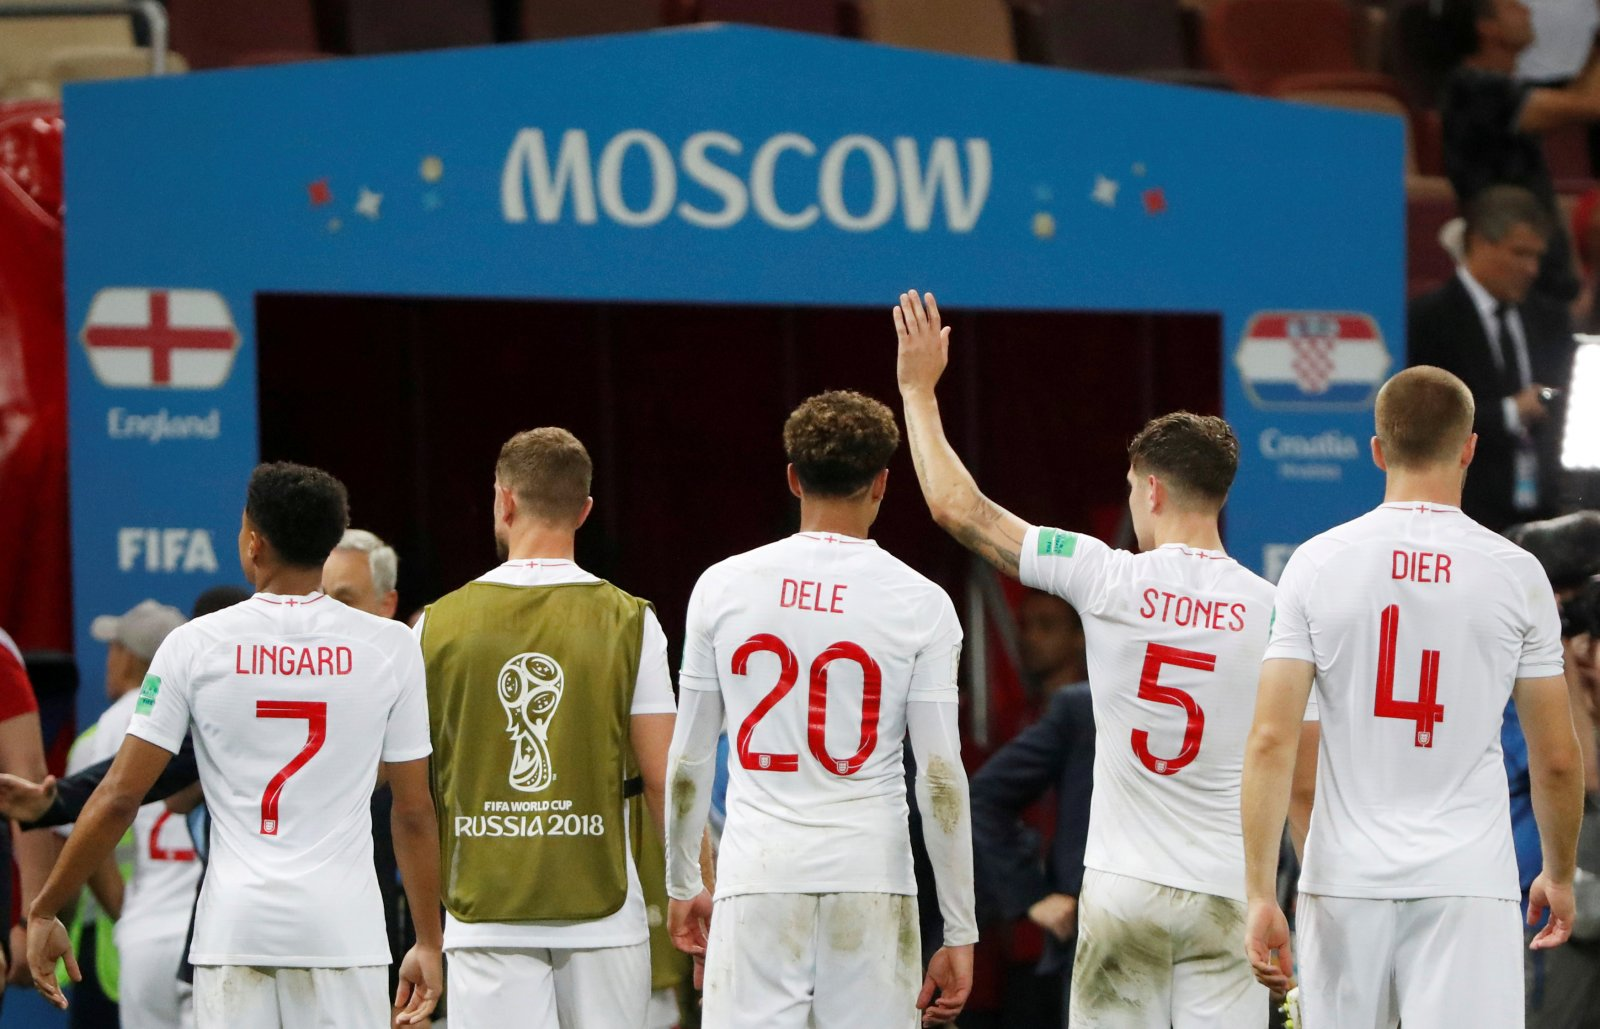 England players after defeat to Croatia World Cup 2018